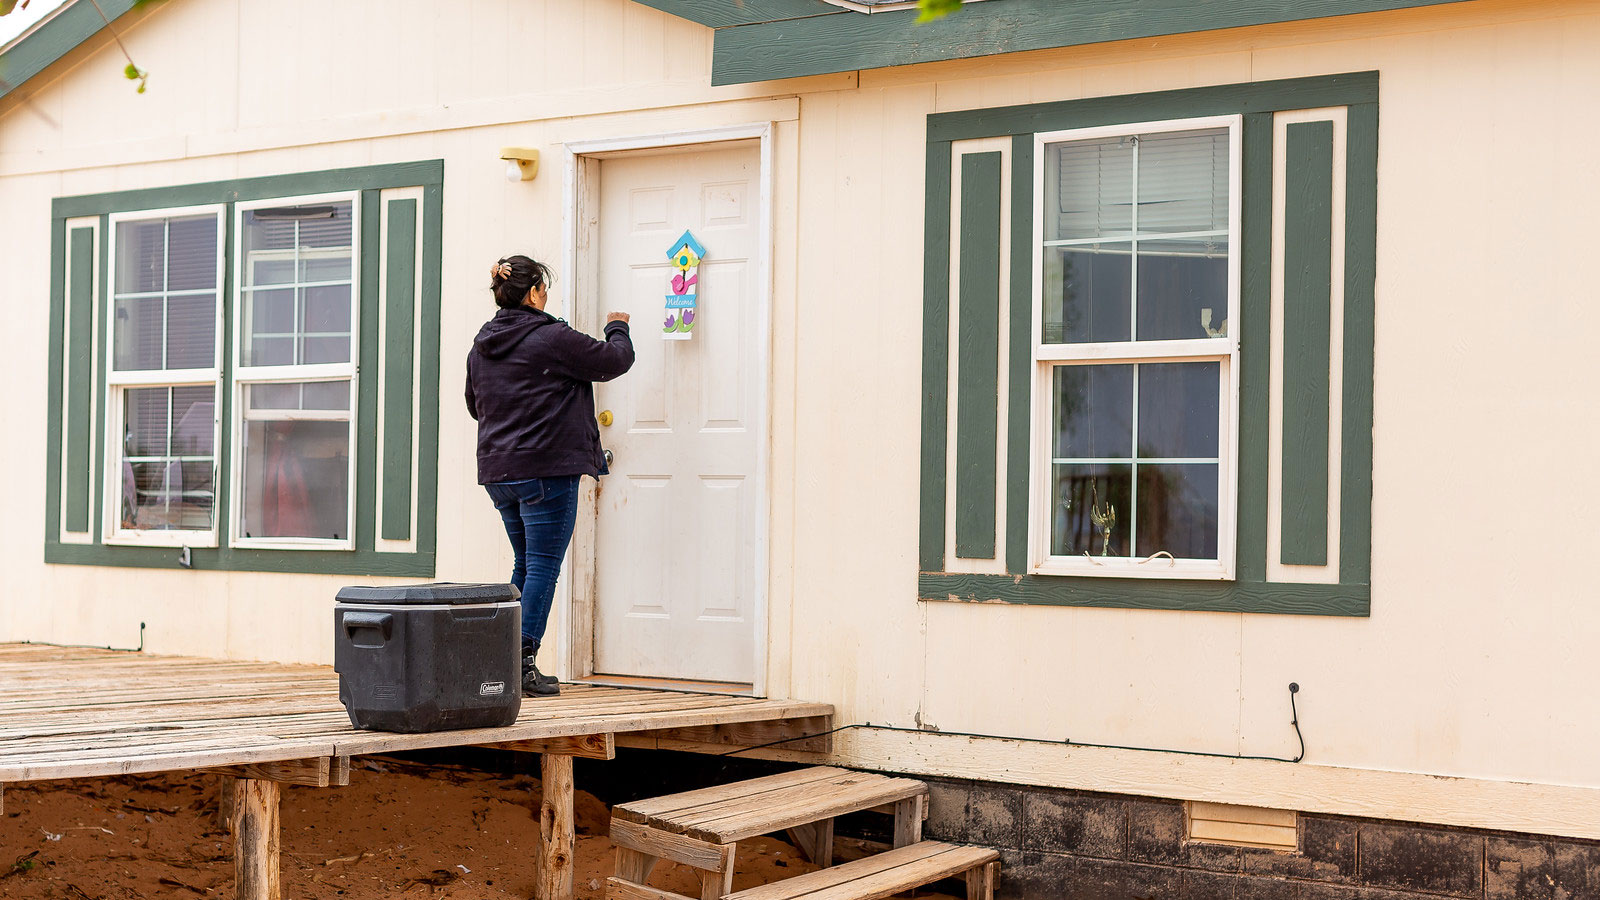 Tara Benally, a field director for Rural Arizona Project, conducts door-knocking efforts on the Navajo Nation as a part of a voter registration program in 2019.